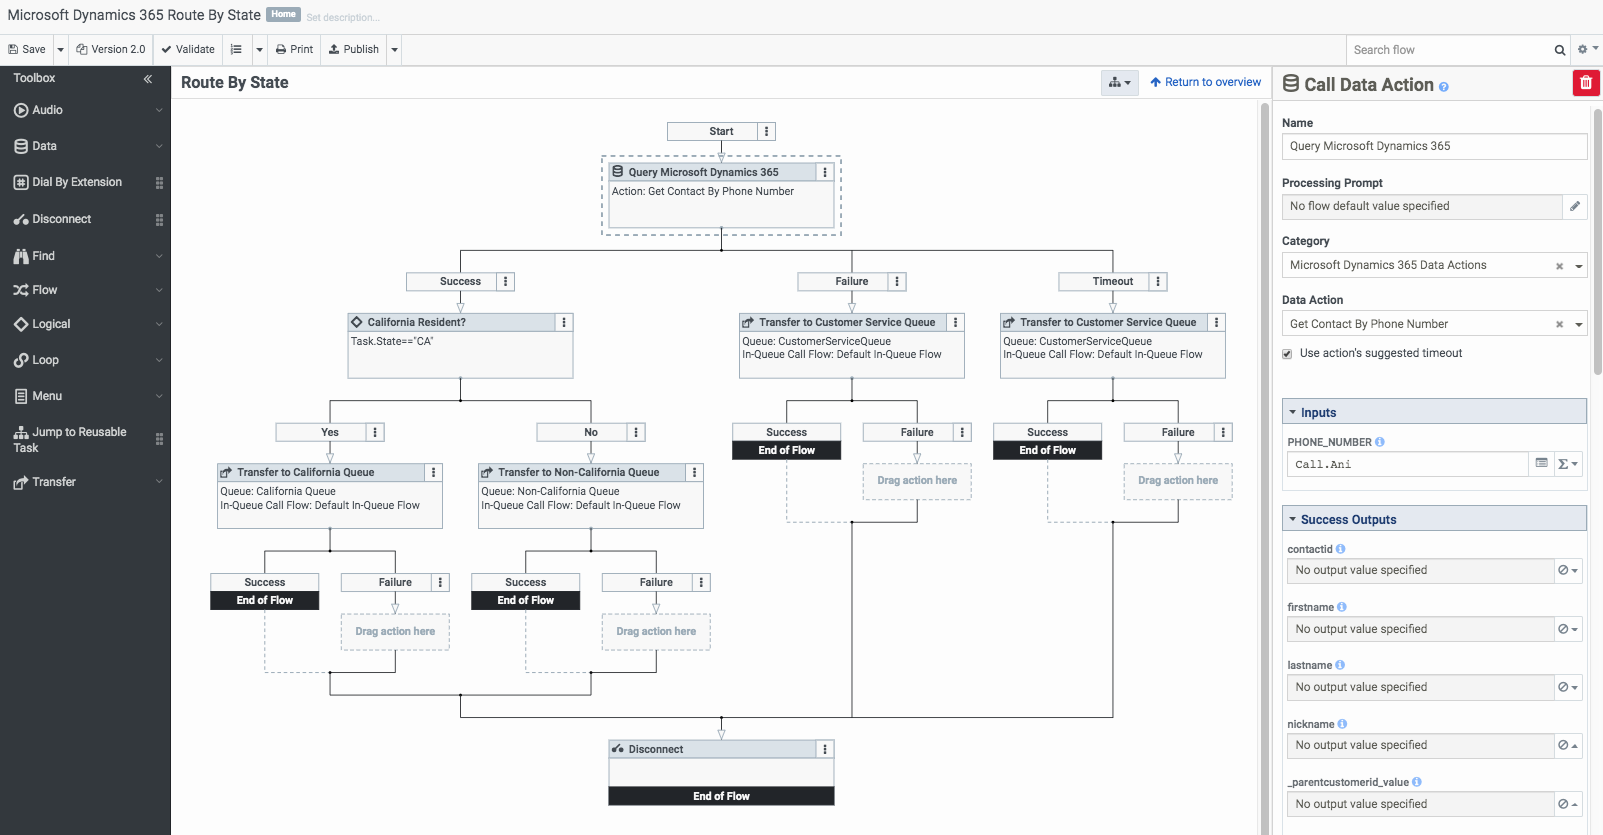 Example call flow for Microsoft Dynamics 365 data actions integration